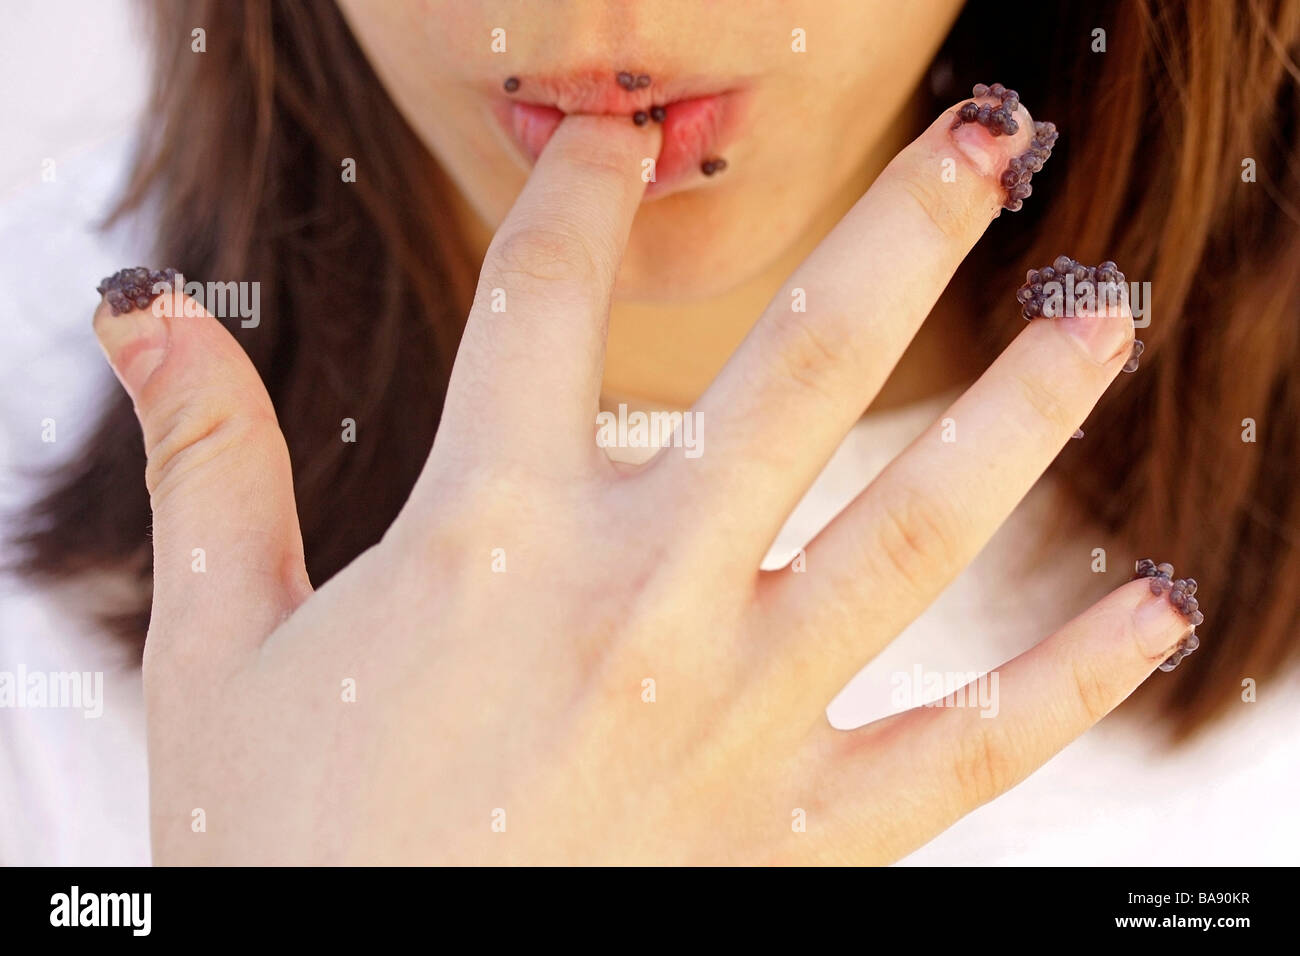 Eating caviar with fingers - Stock Image